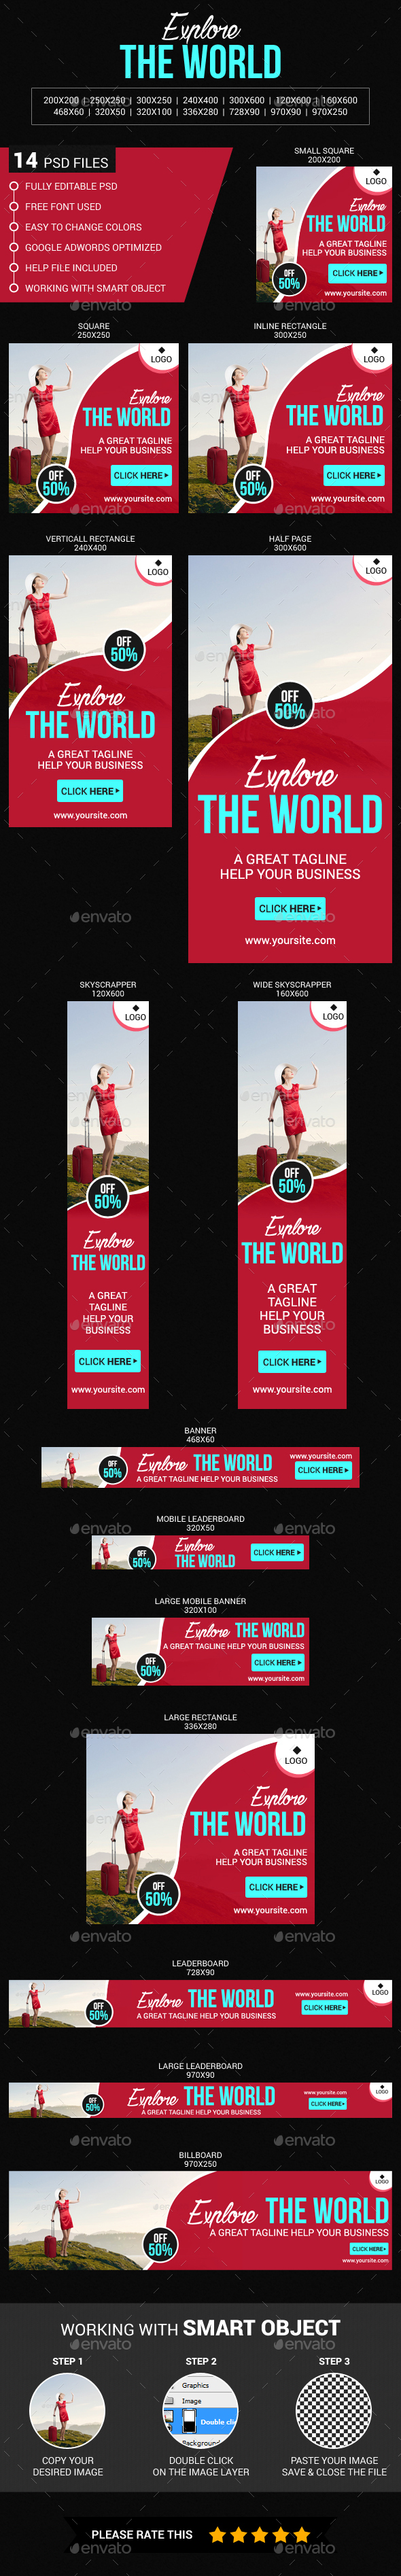 Explore The World - Banners & Ads Web Elements